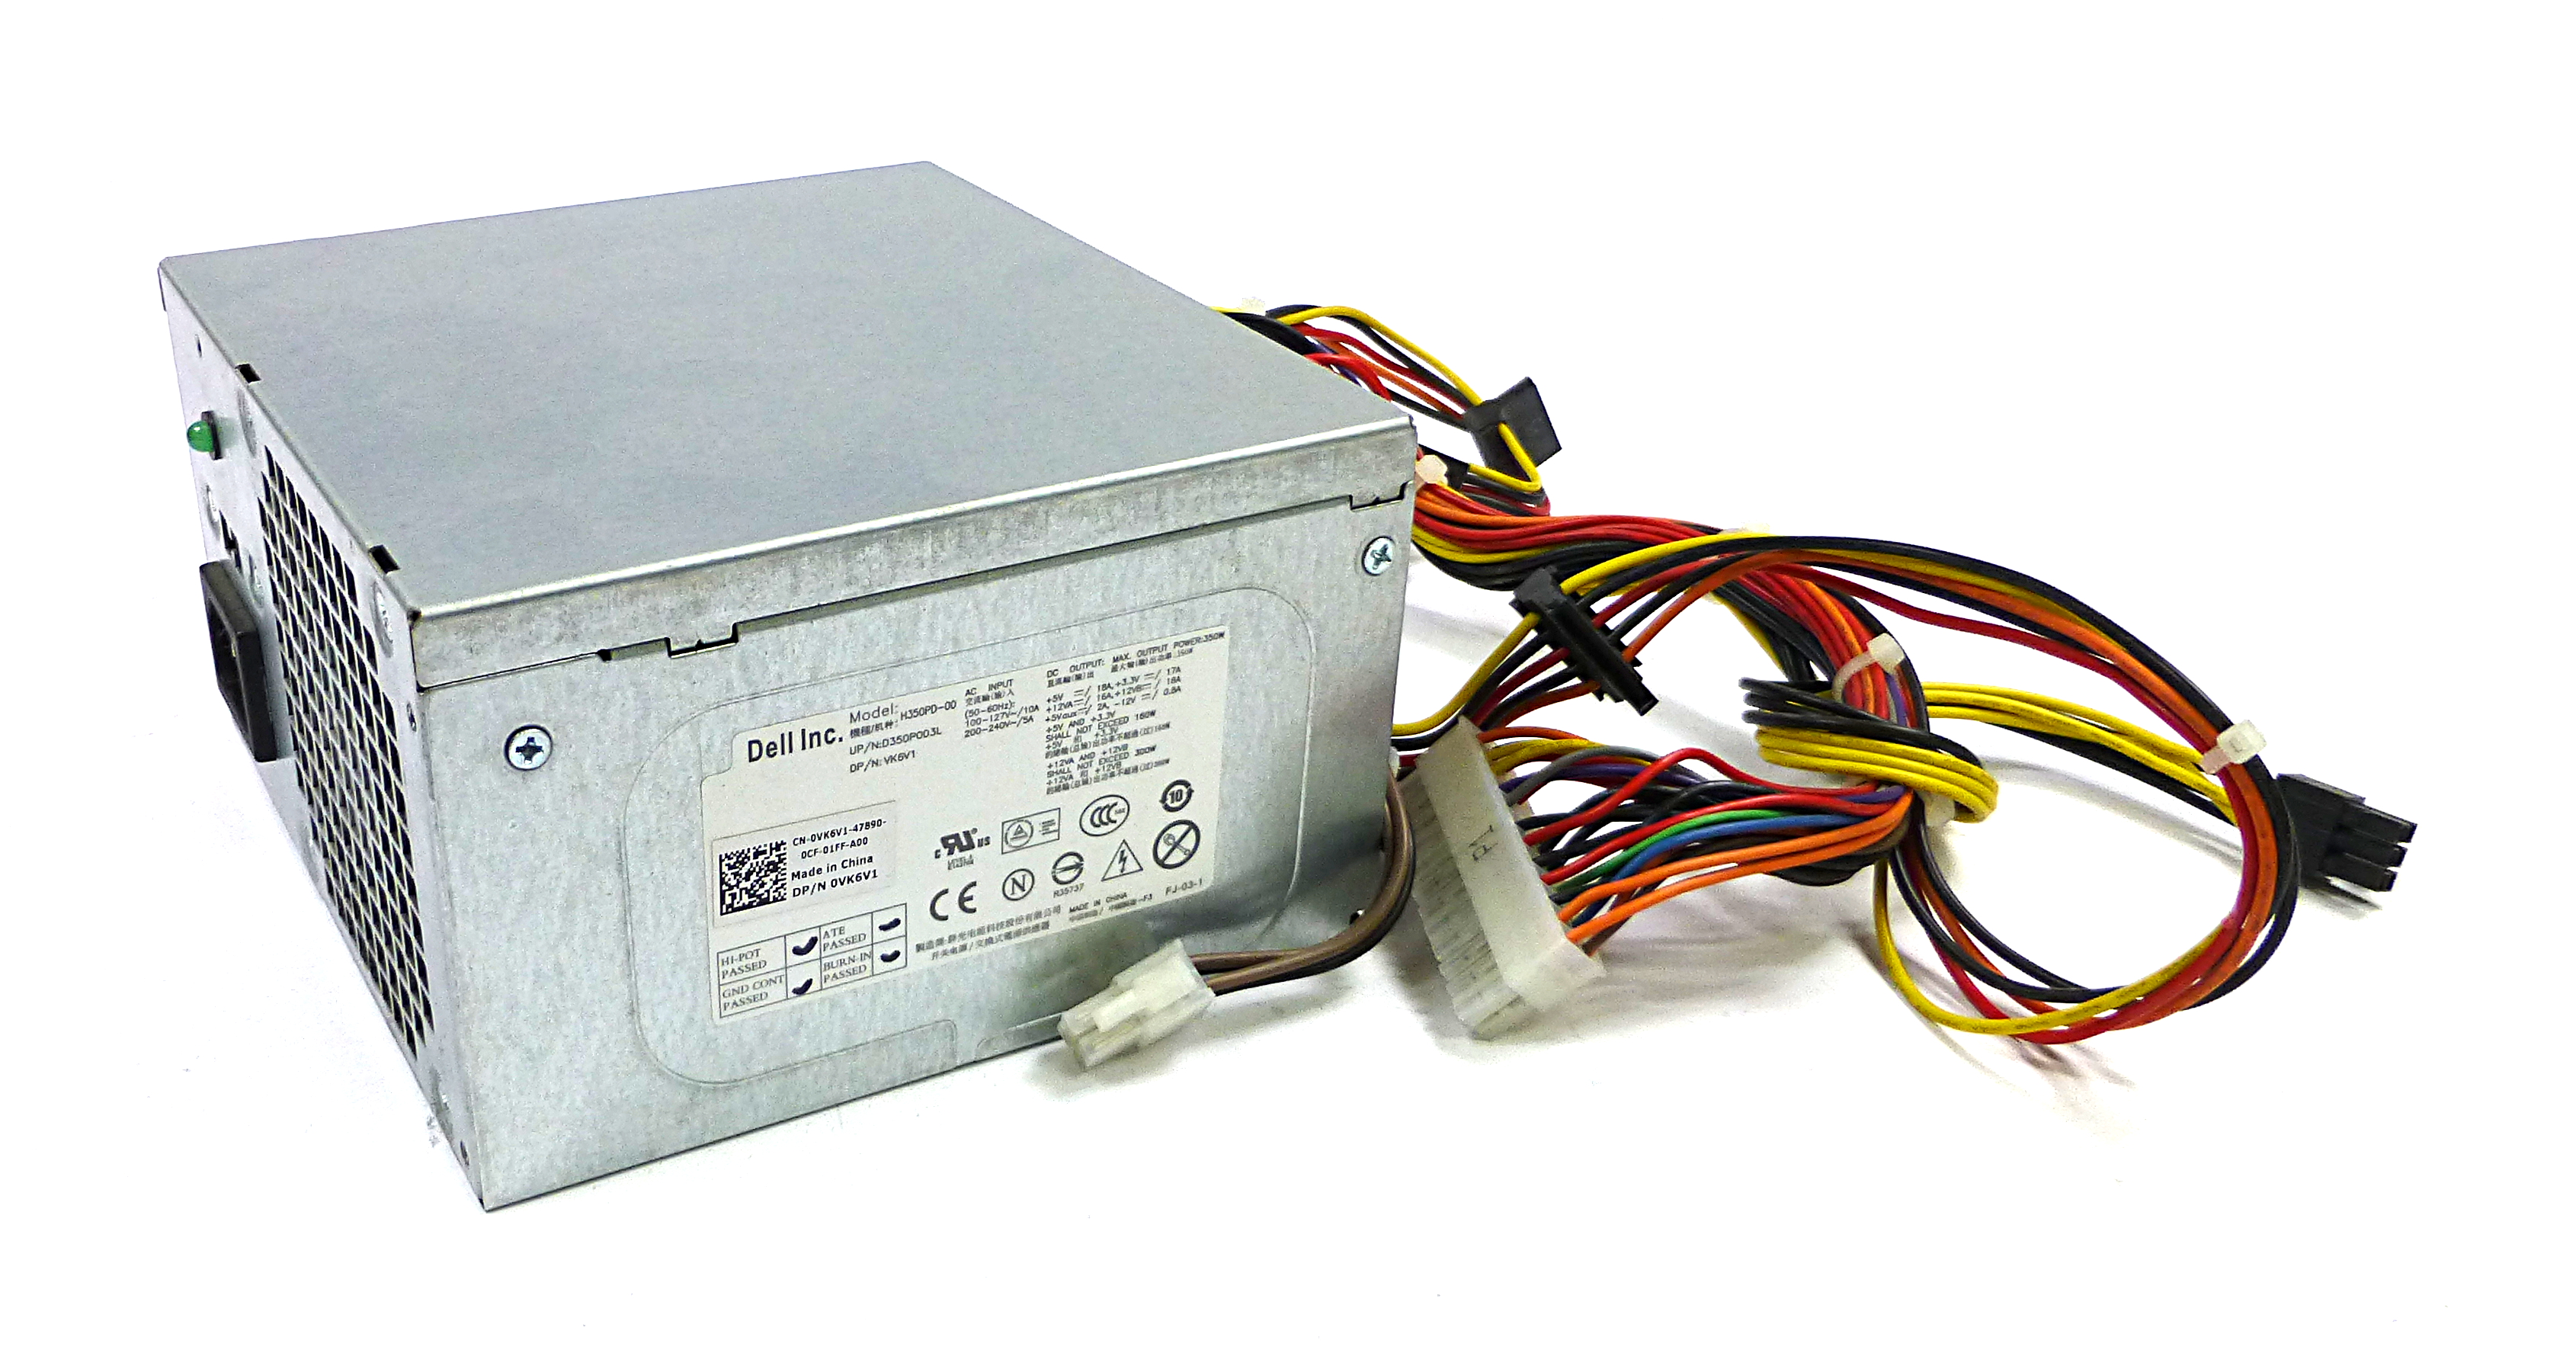 Dell VK6V1 350W 24-Pin Power Supply For Vostro 460 Desktop PC